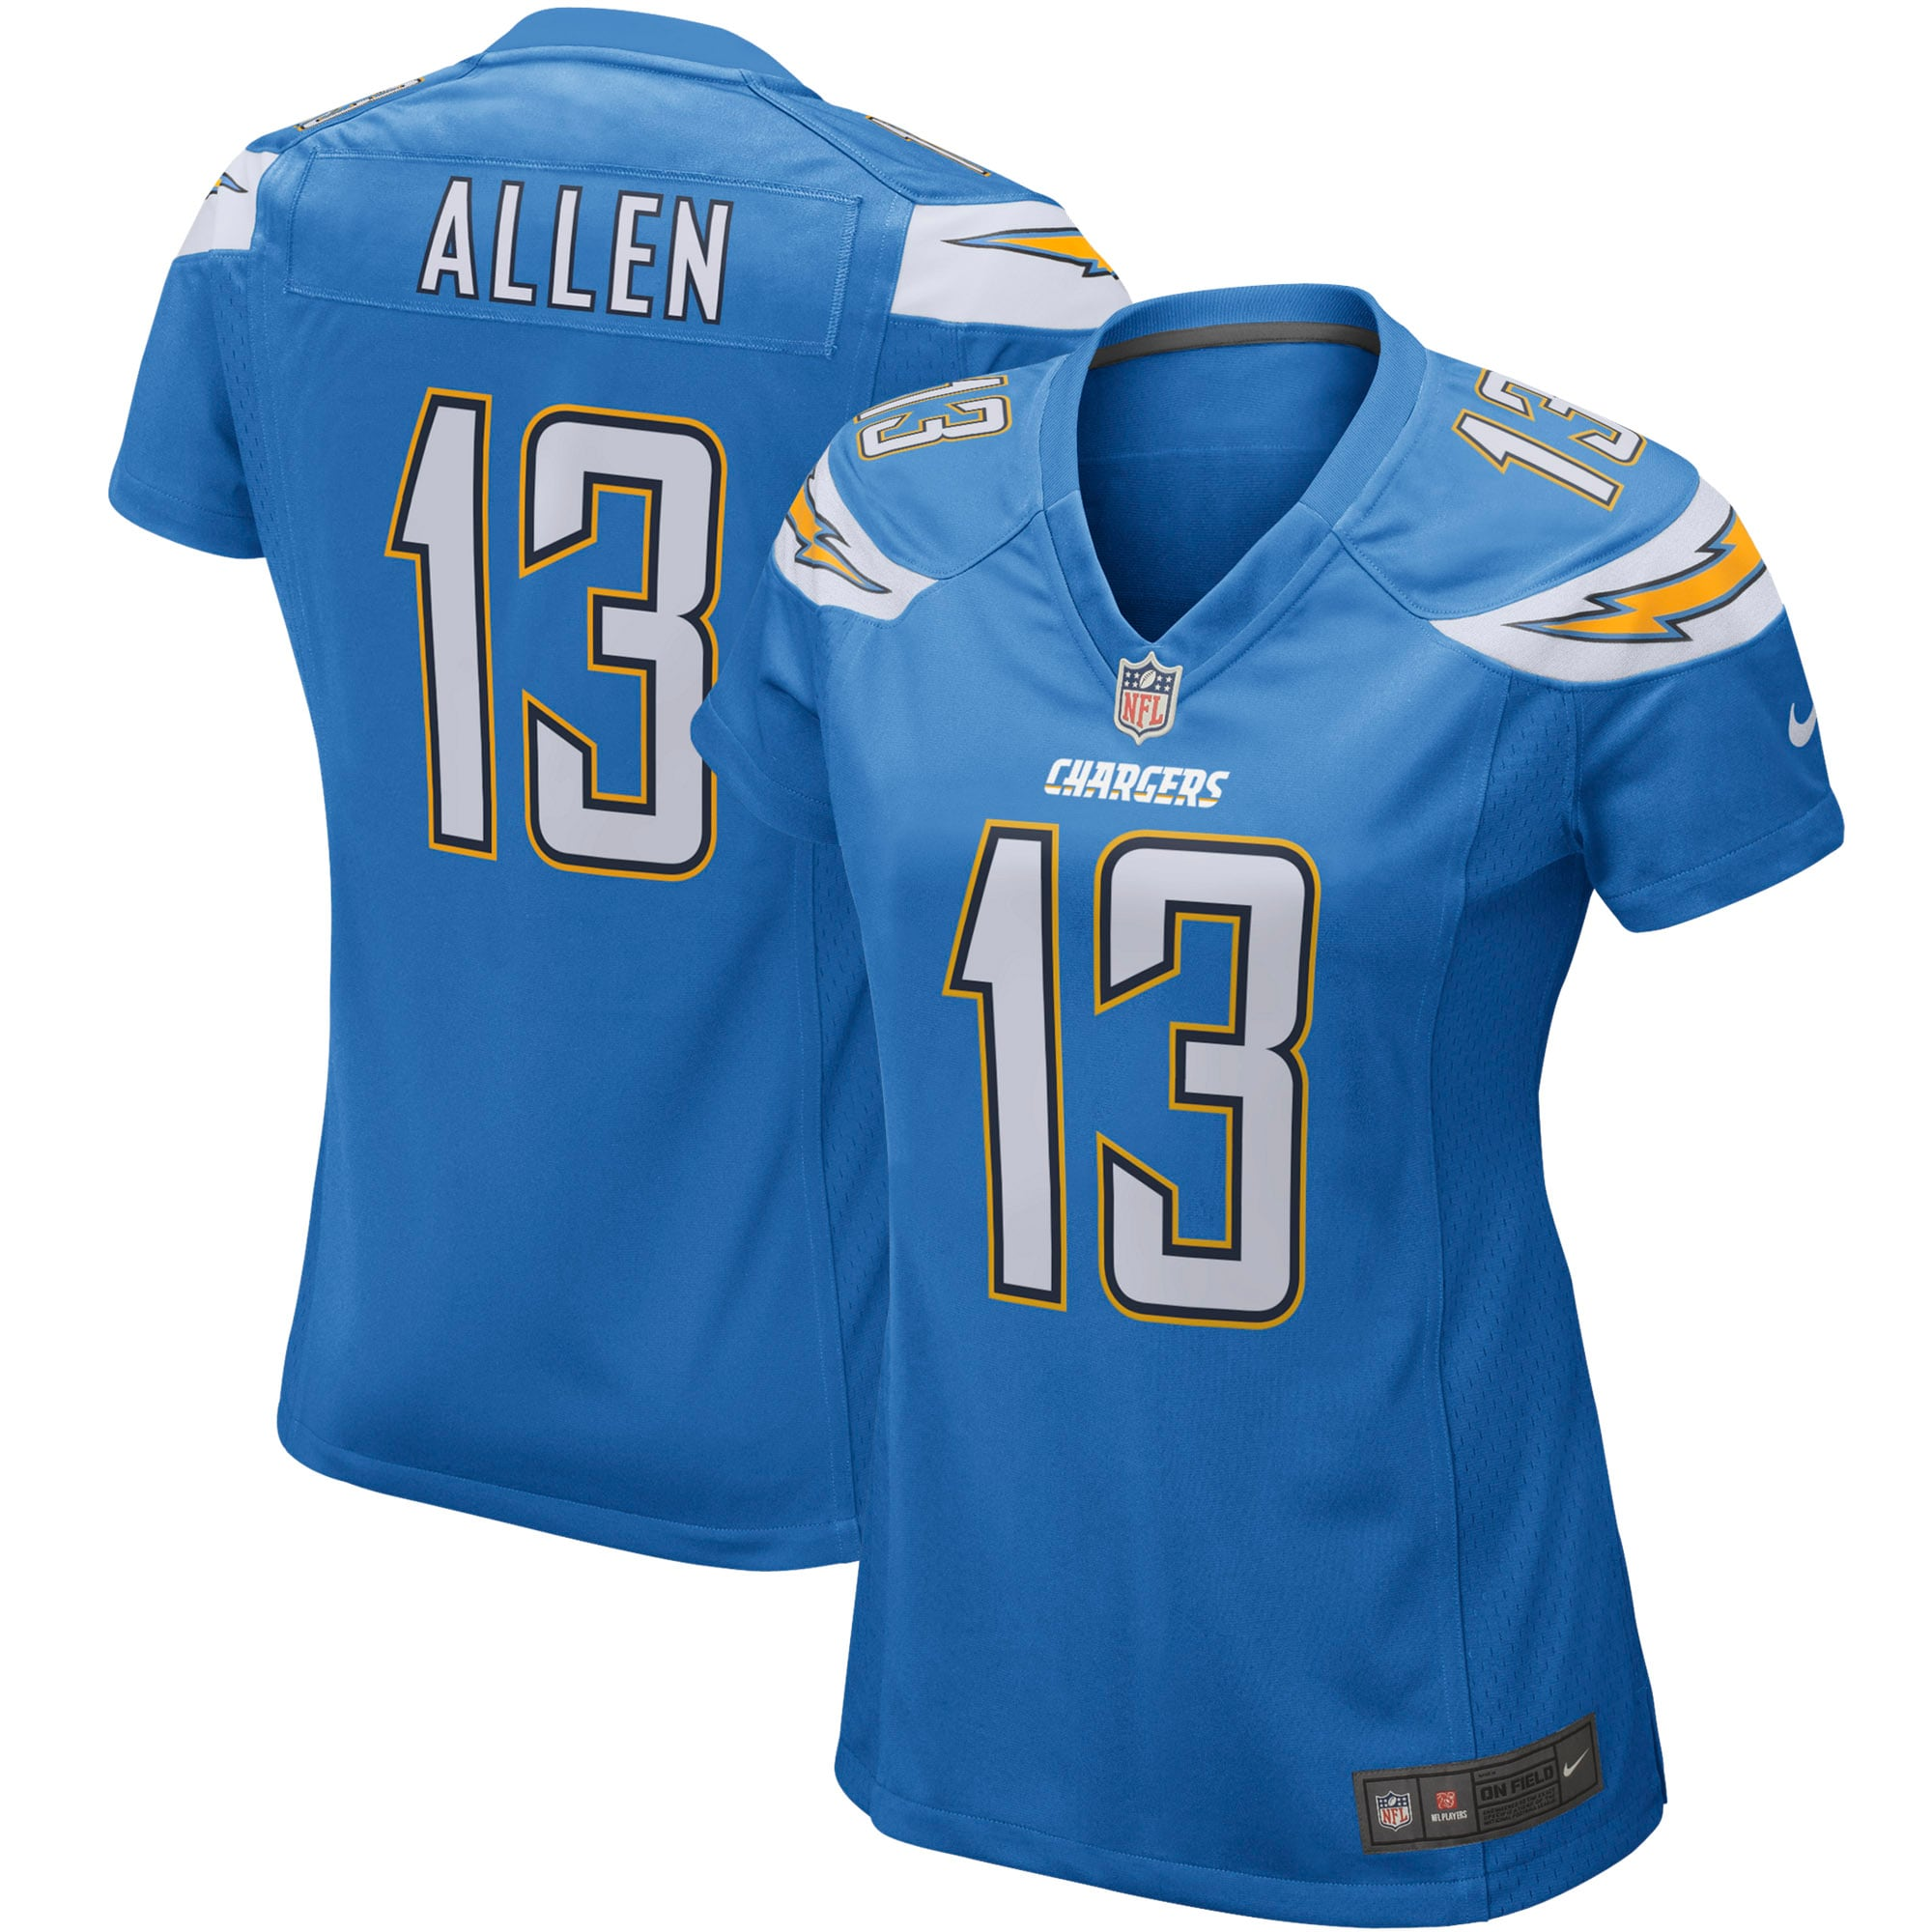 Keenan Allen Los Angeles Chargers Nike Women's Game Player Jersey - Powder Blue